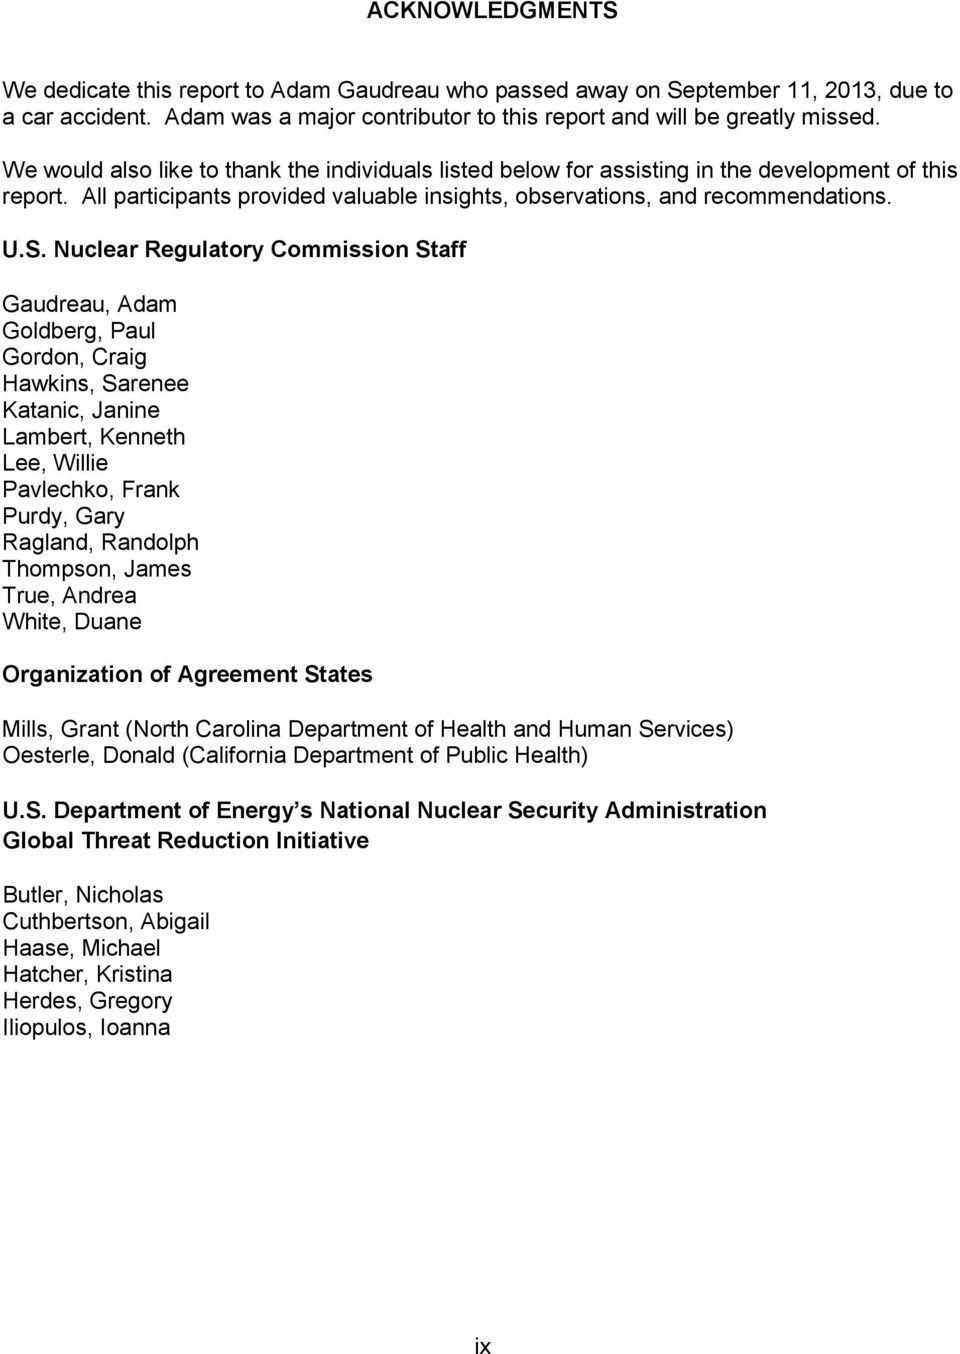 Nuclear Regulatory Commission Staff Gaudreau, Adam Goldberg, Paul Gordon, Craig Hawkins, Sarenee Katanic, Janine Lambert, Kenneth Lee, Willie Pavlechko, Frank Purdy, Gary Ragland, Randolph Thompson,